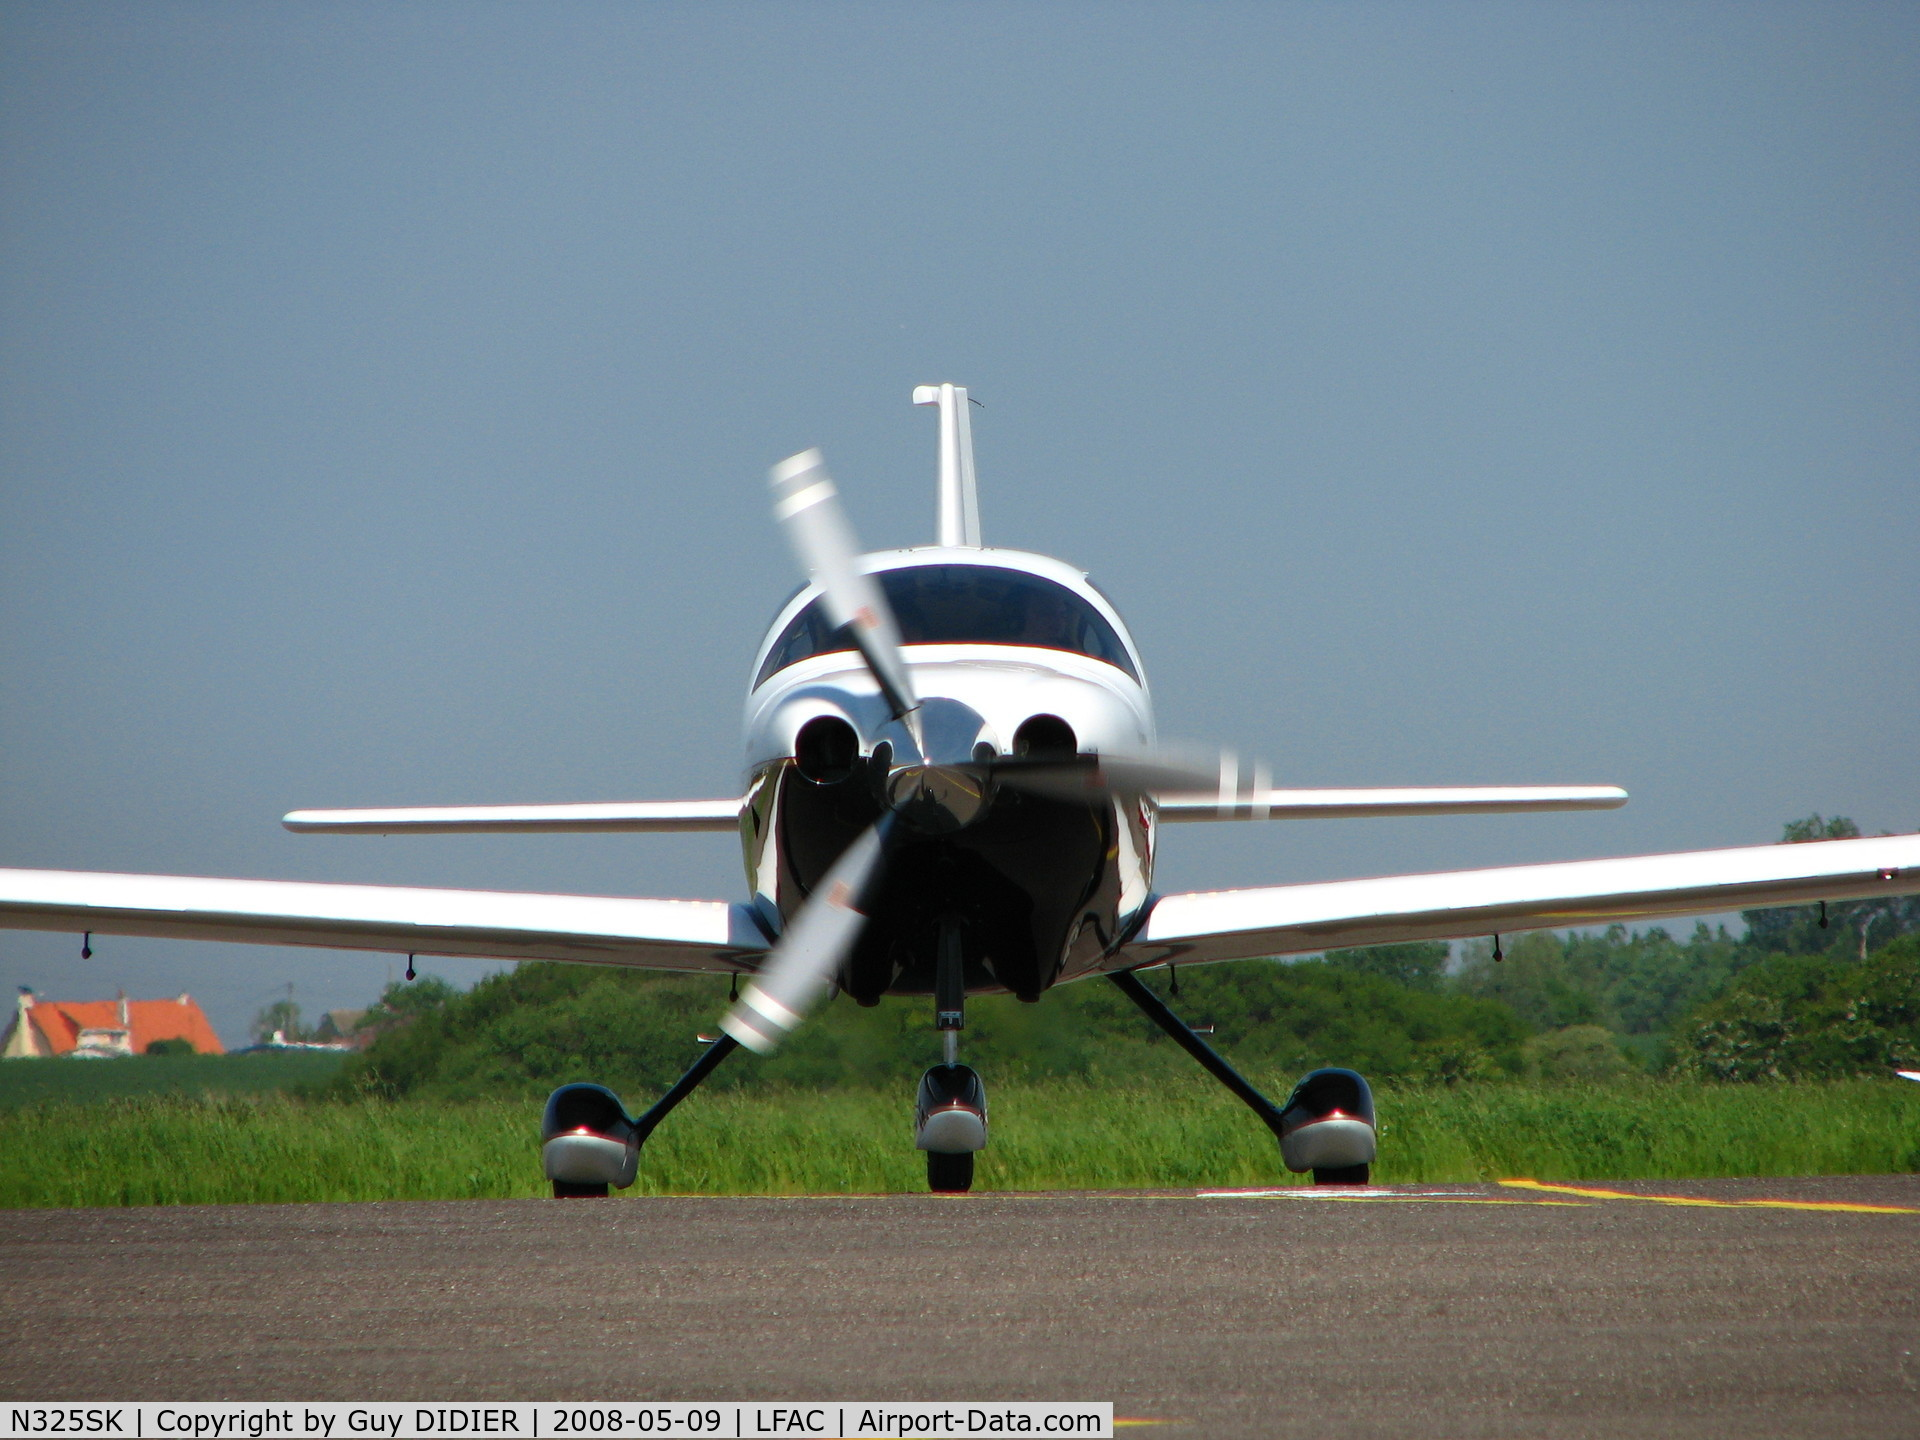 N325SK, 2005 Lancair LC41-550FG C/N 41528, Ready to taxi at Calais - France